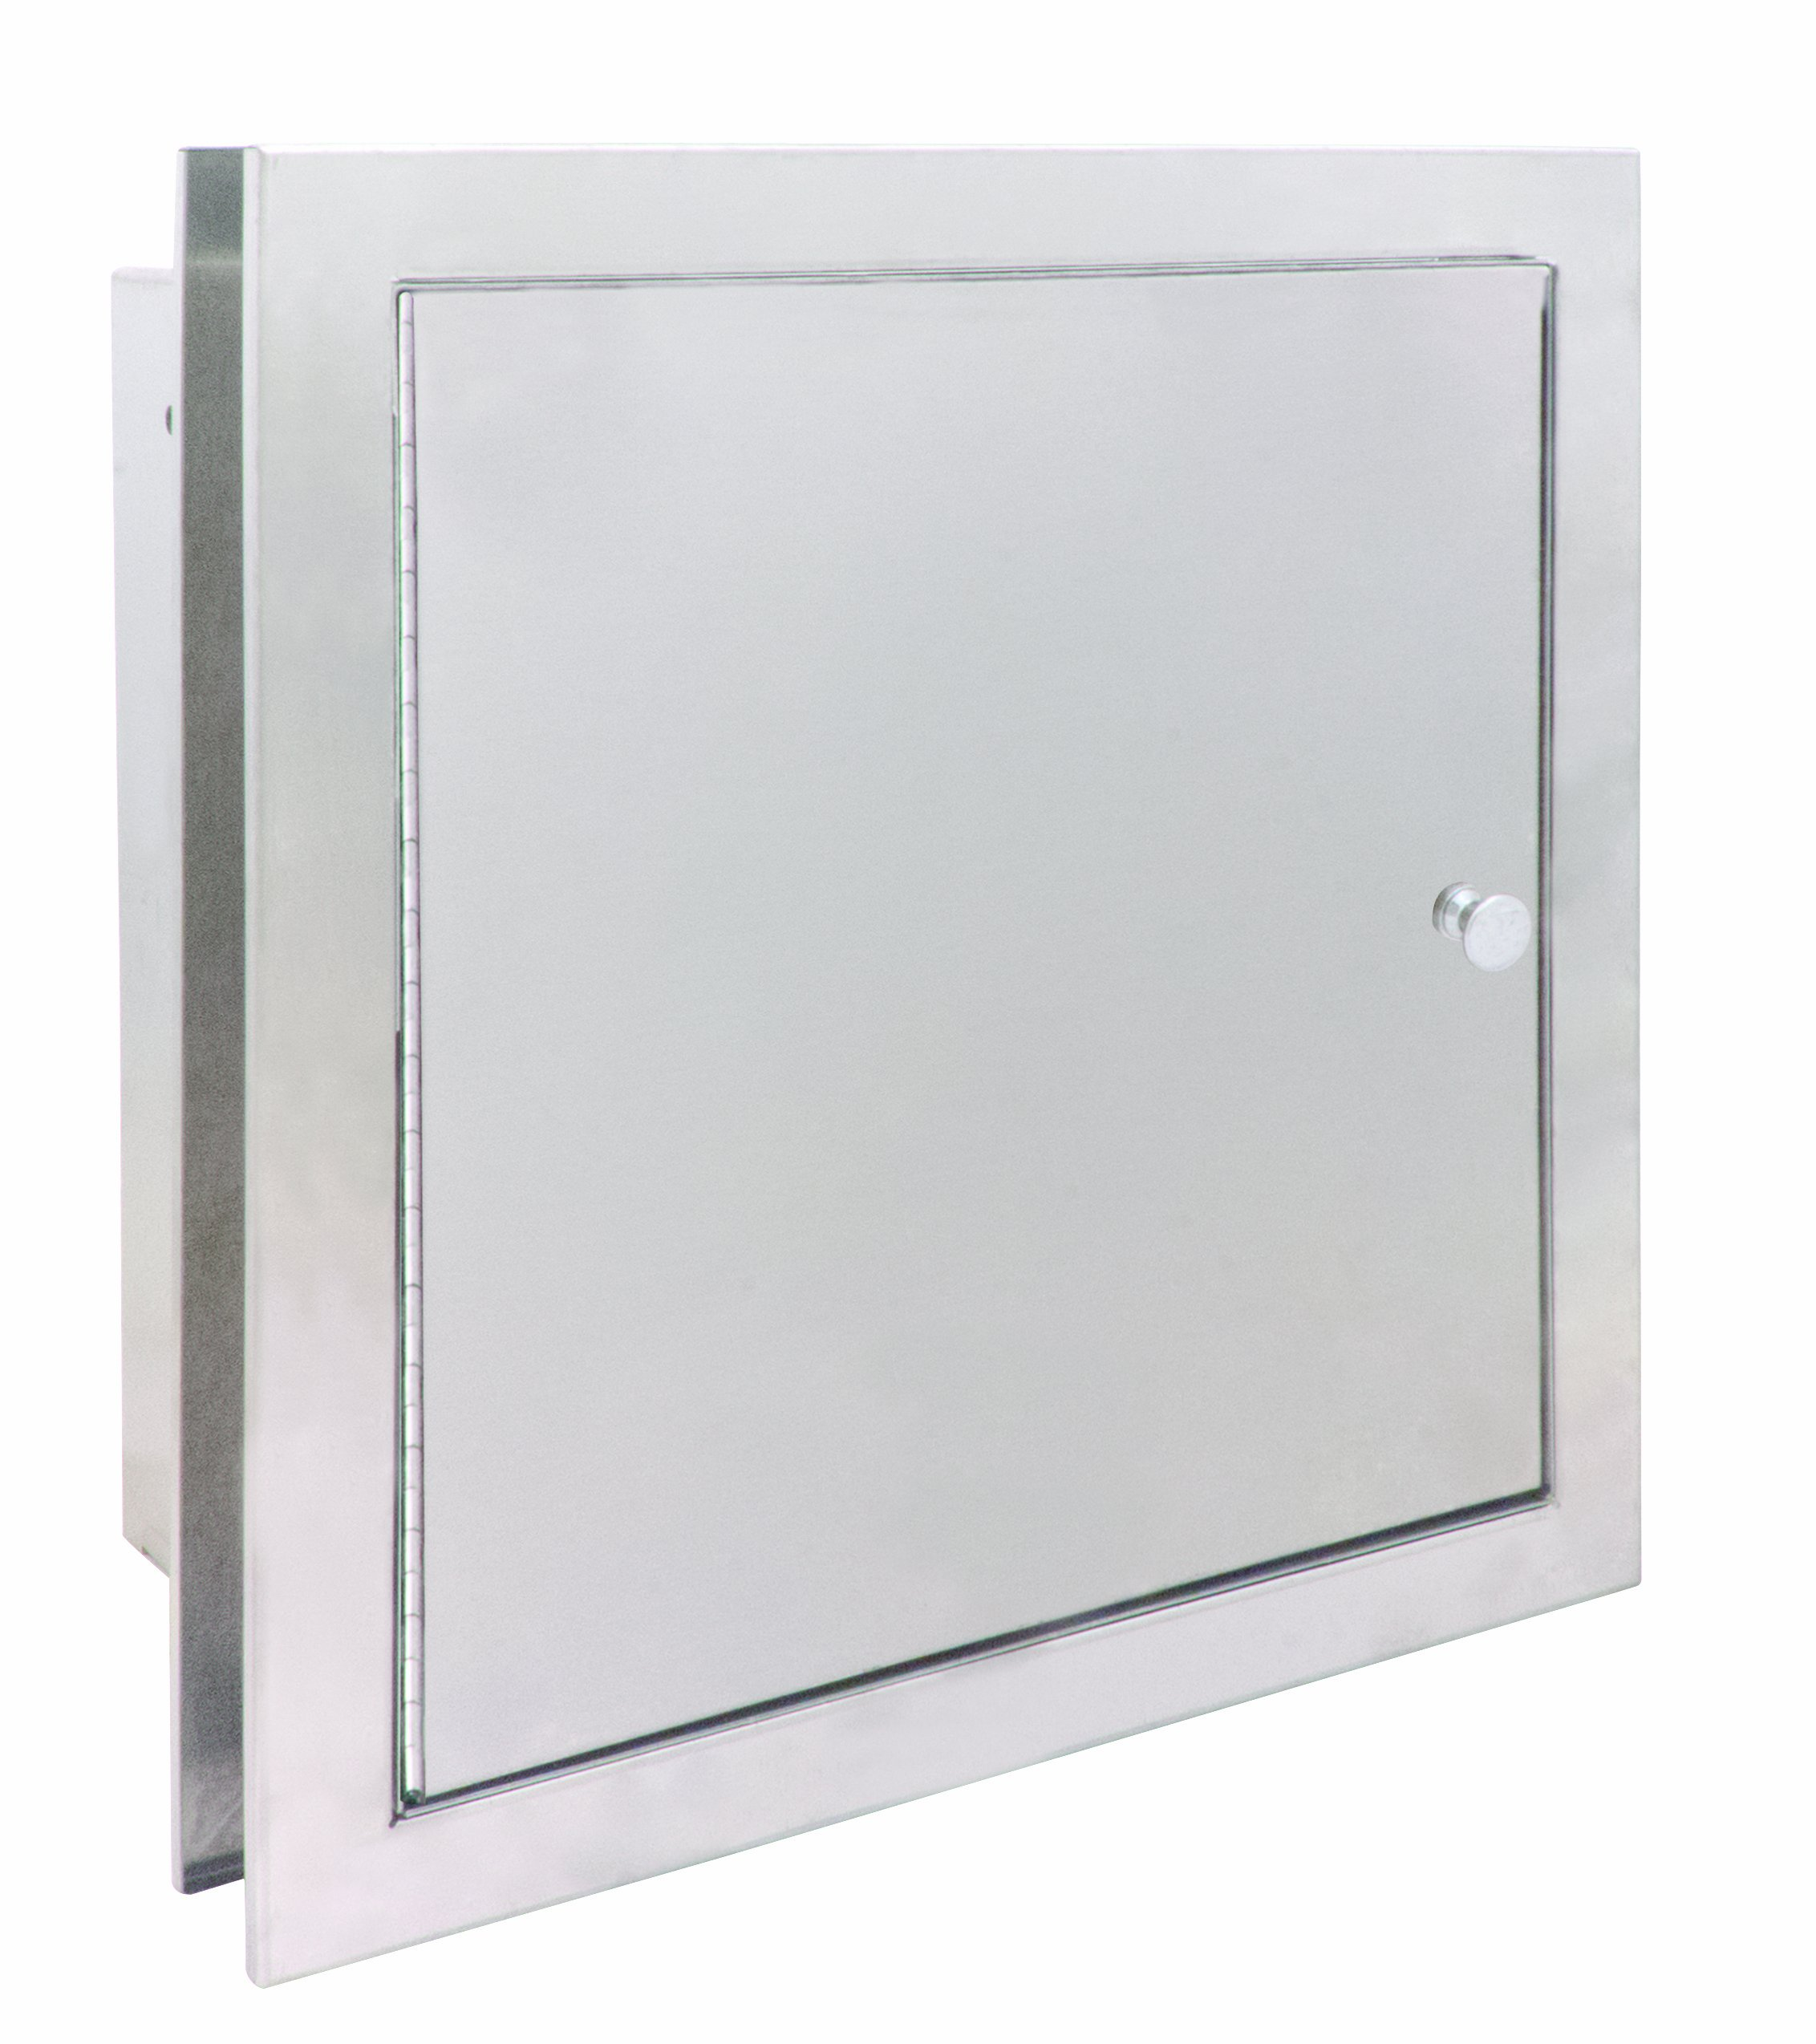 Bradley 9813-000000 18 Gauge Satin Stainless Steel Specimen Pass-Thru Cabinet with Exposed Surfaces, 13-3/8'' Width x 12-5/8'' Height x 6'' Depth